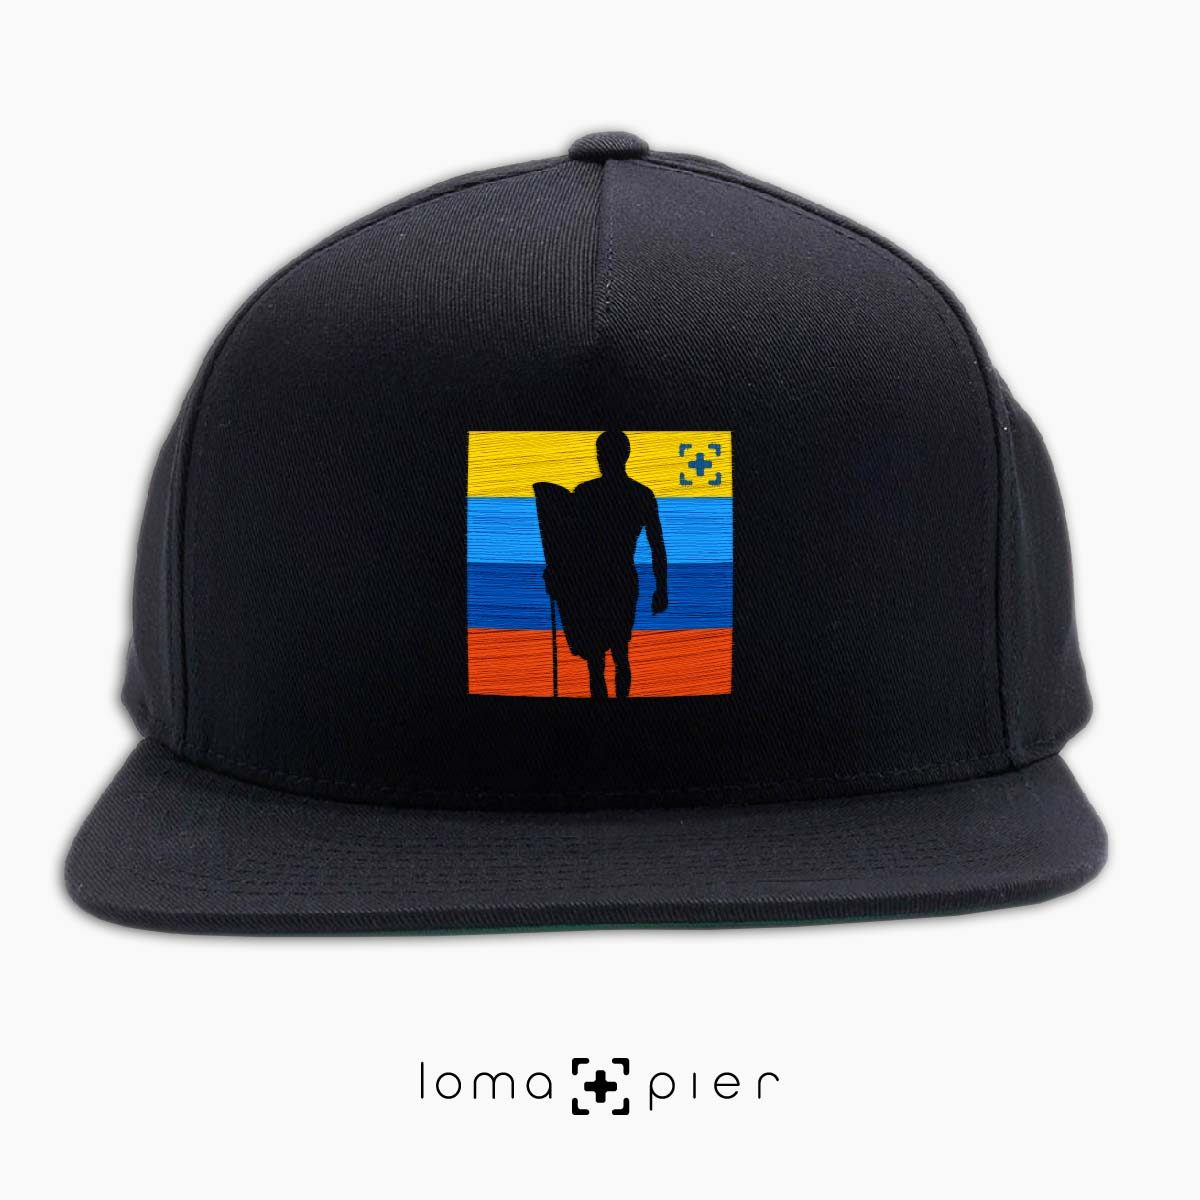 SON OF A BEACH surfer hat in black by loma+pier hat store